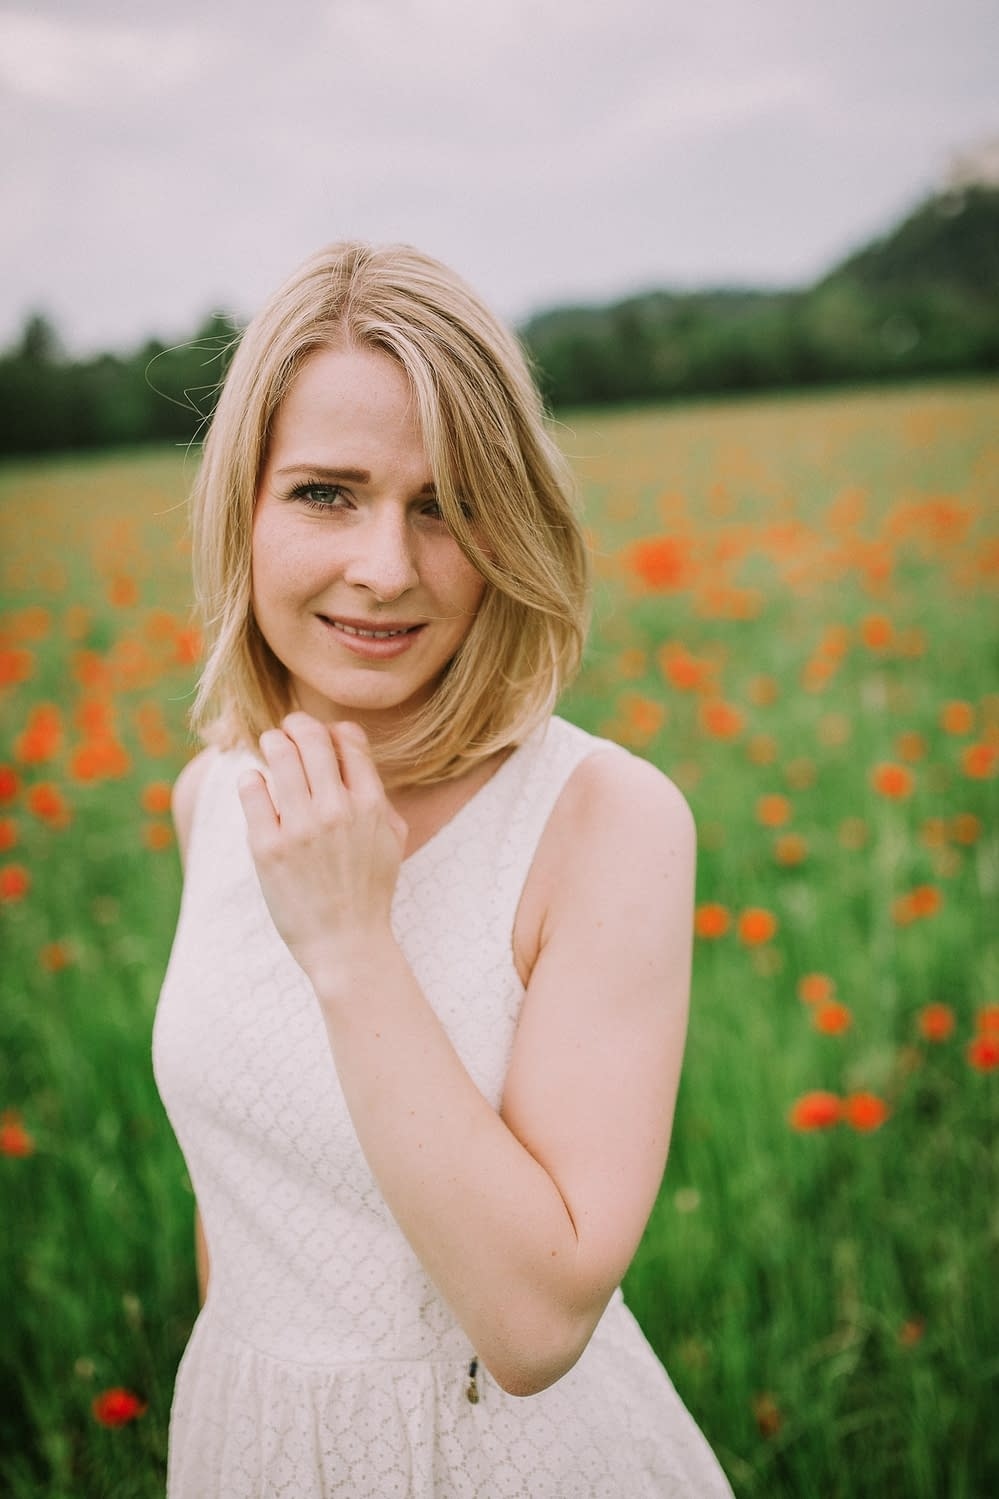 Field of poppies - with Susann